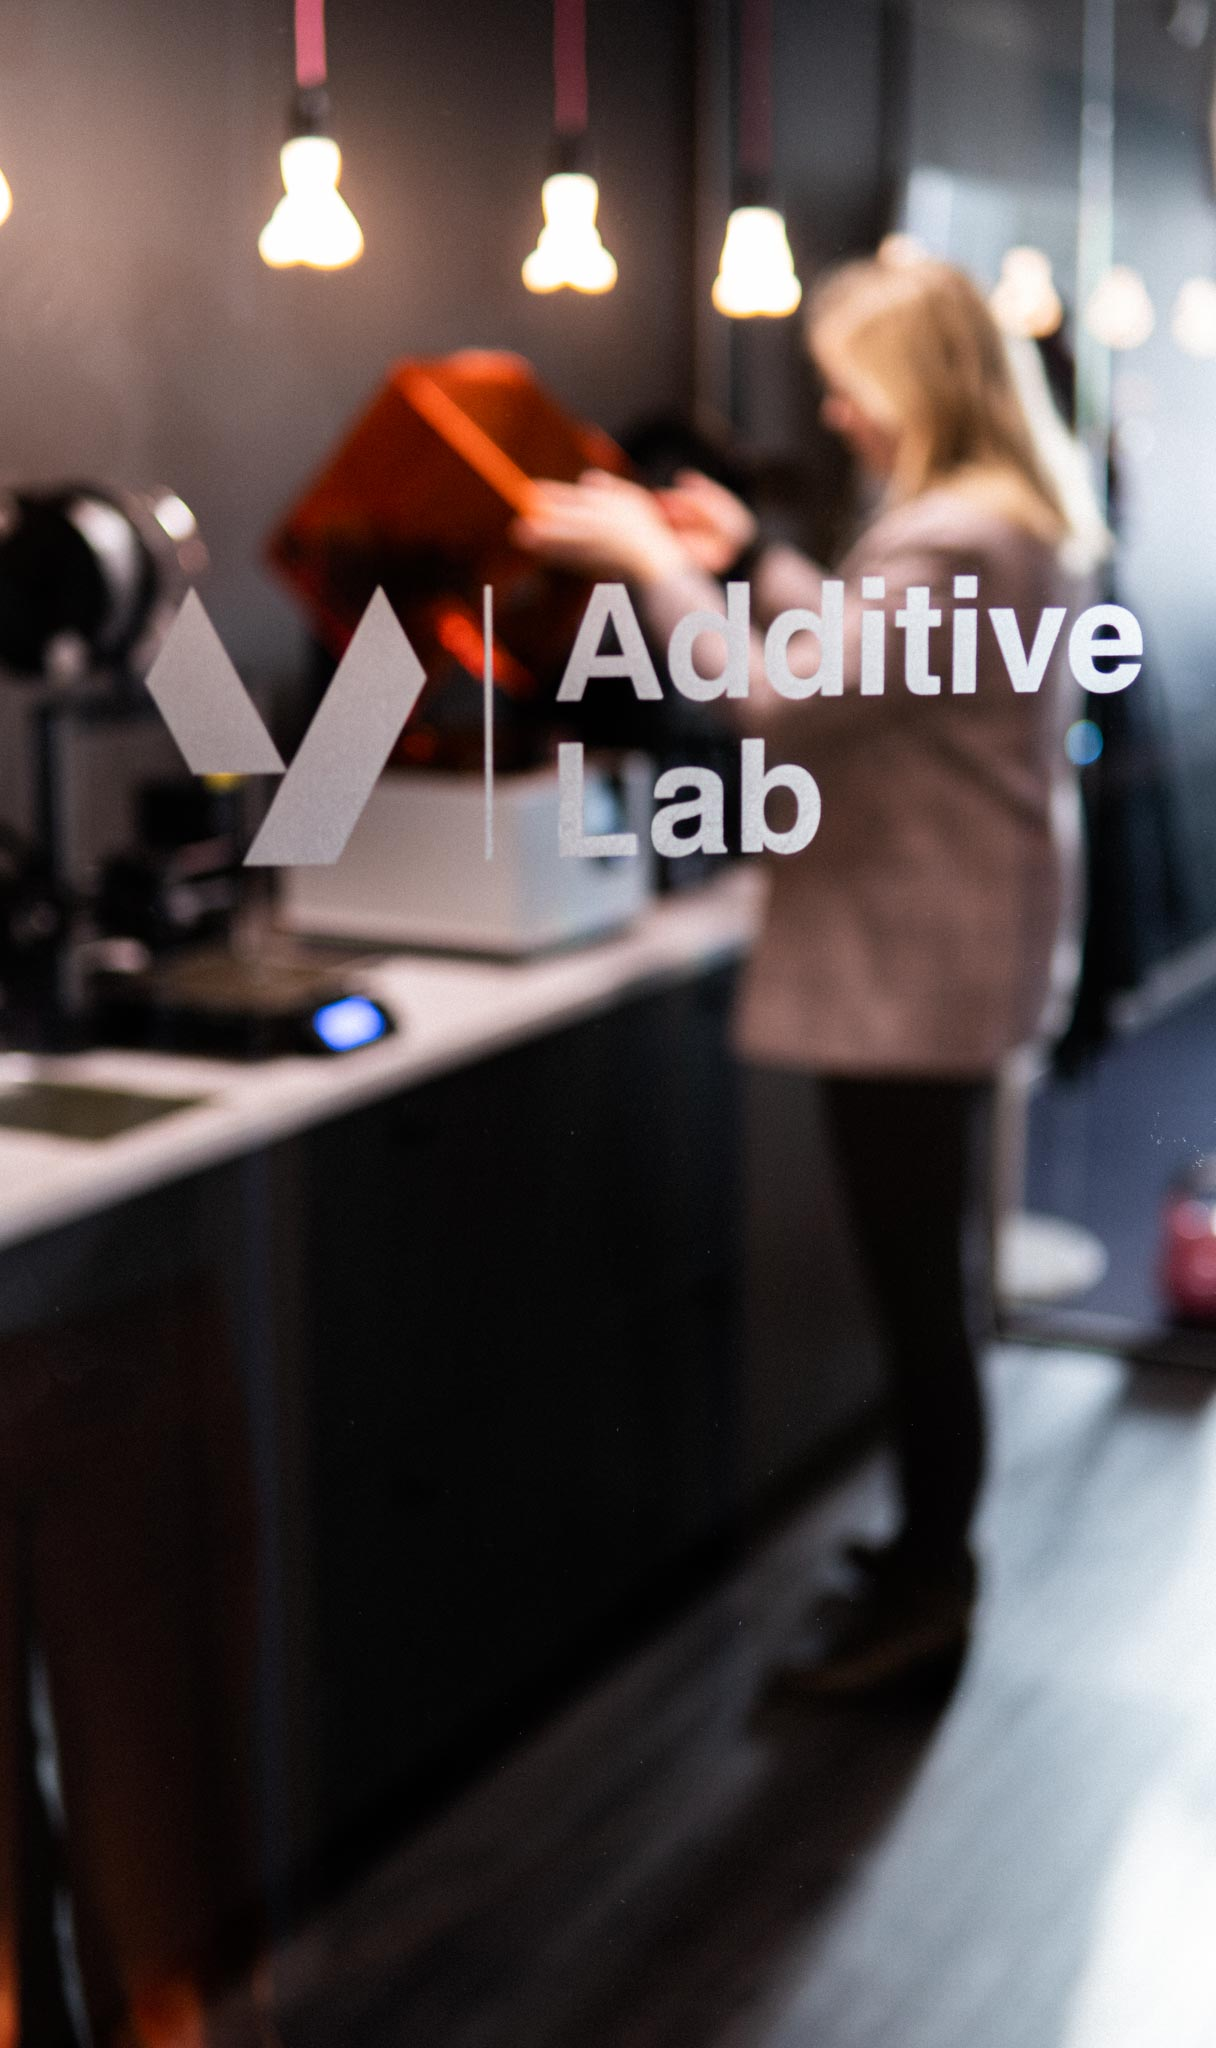 Product Developer in Yovinn Additive Lab opening Formlabs 3D-printer to see prototype